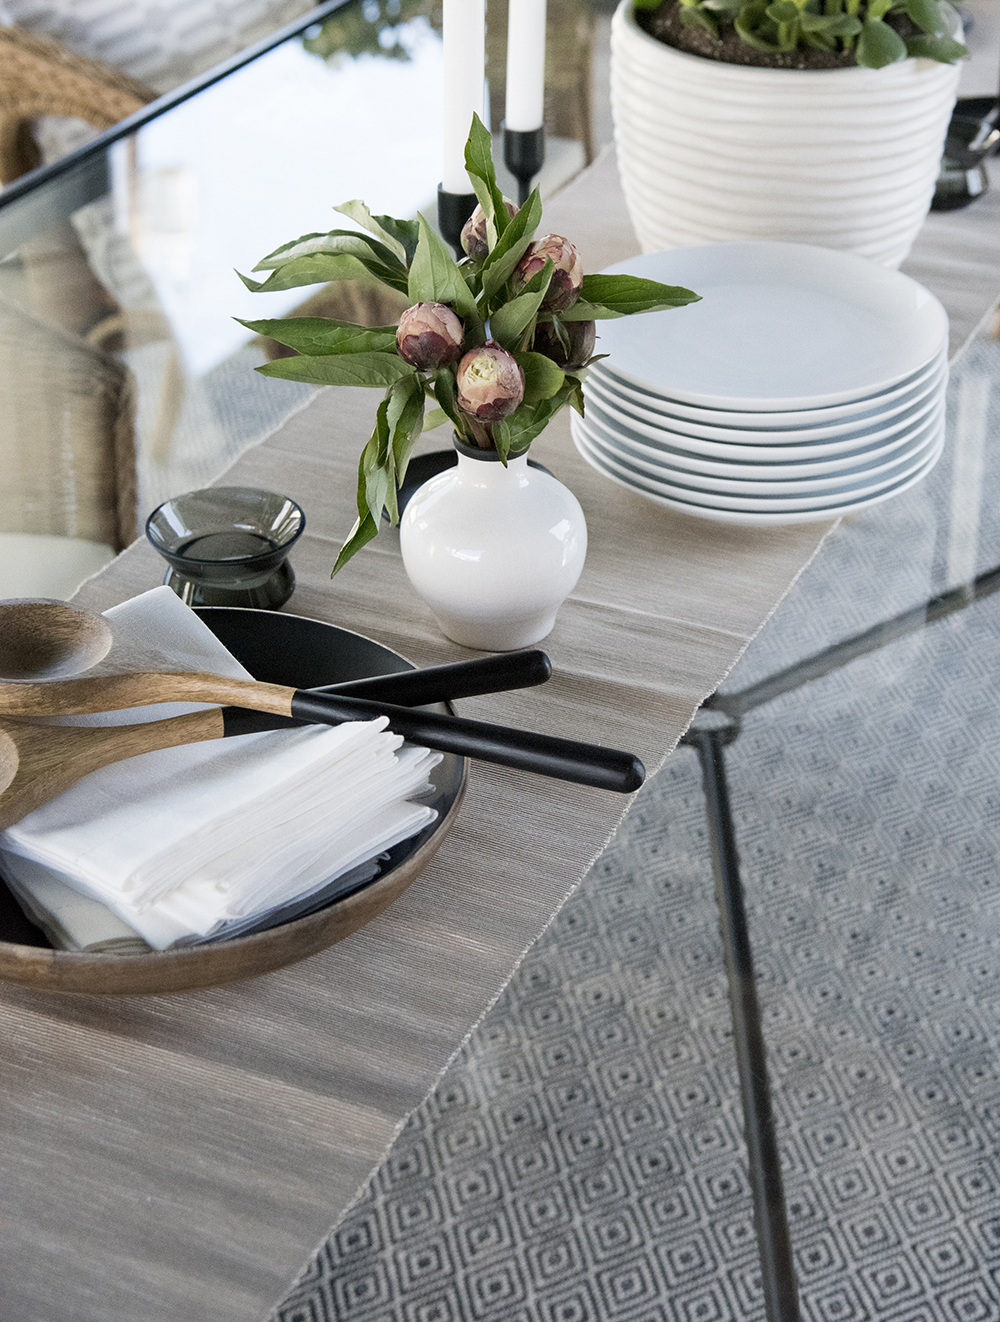 Kitchen Must Haves for Hosting Family & Friends - roomfortuesday.com